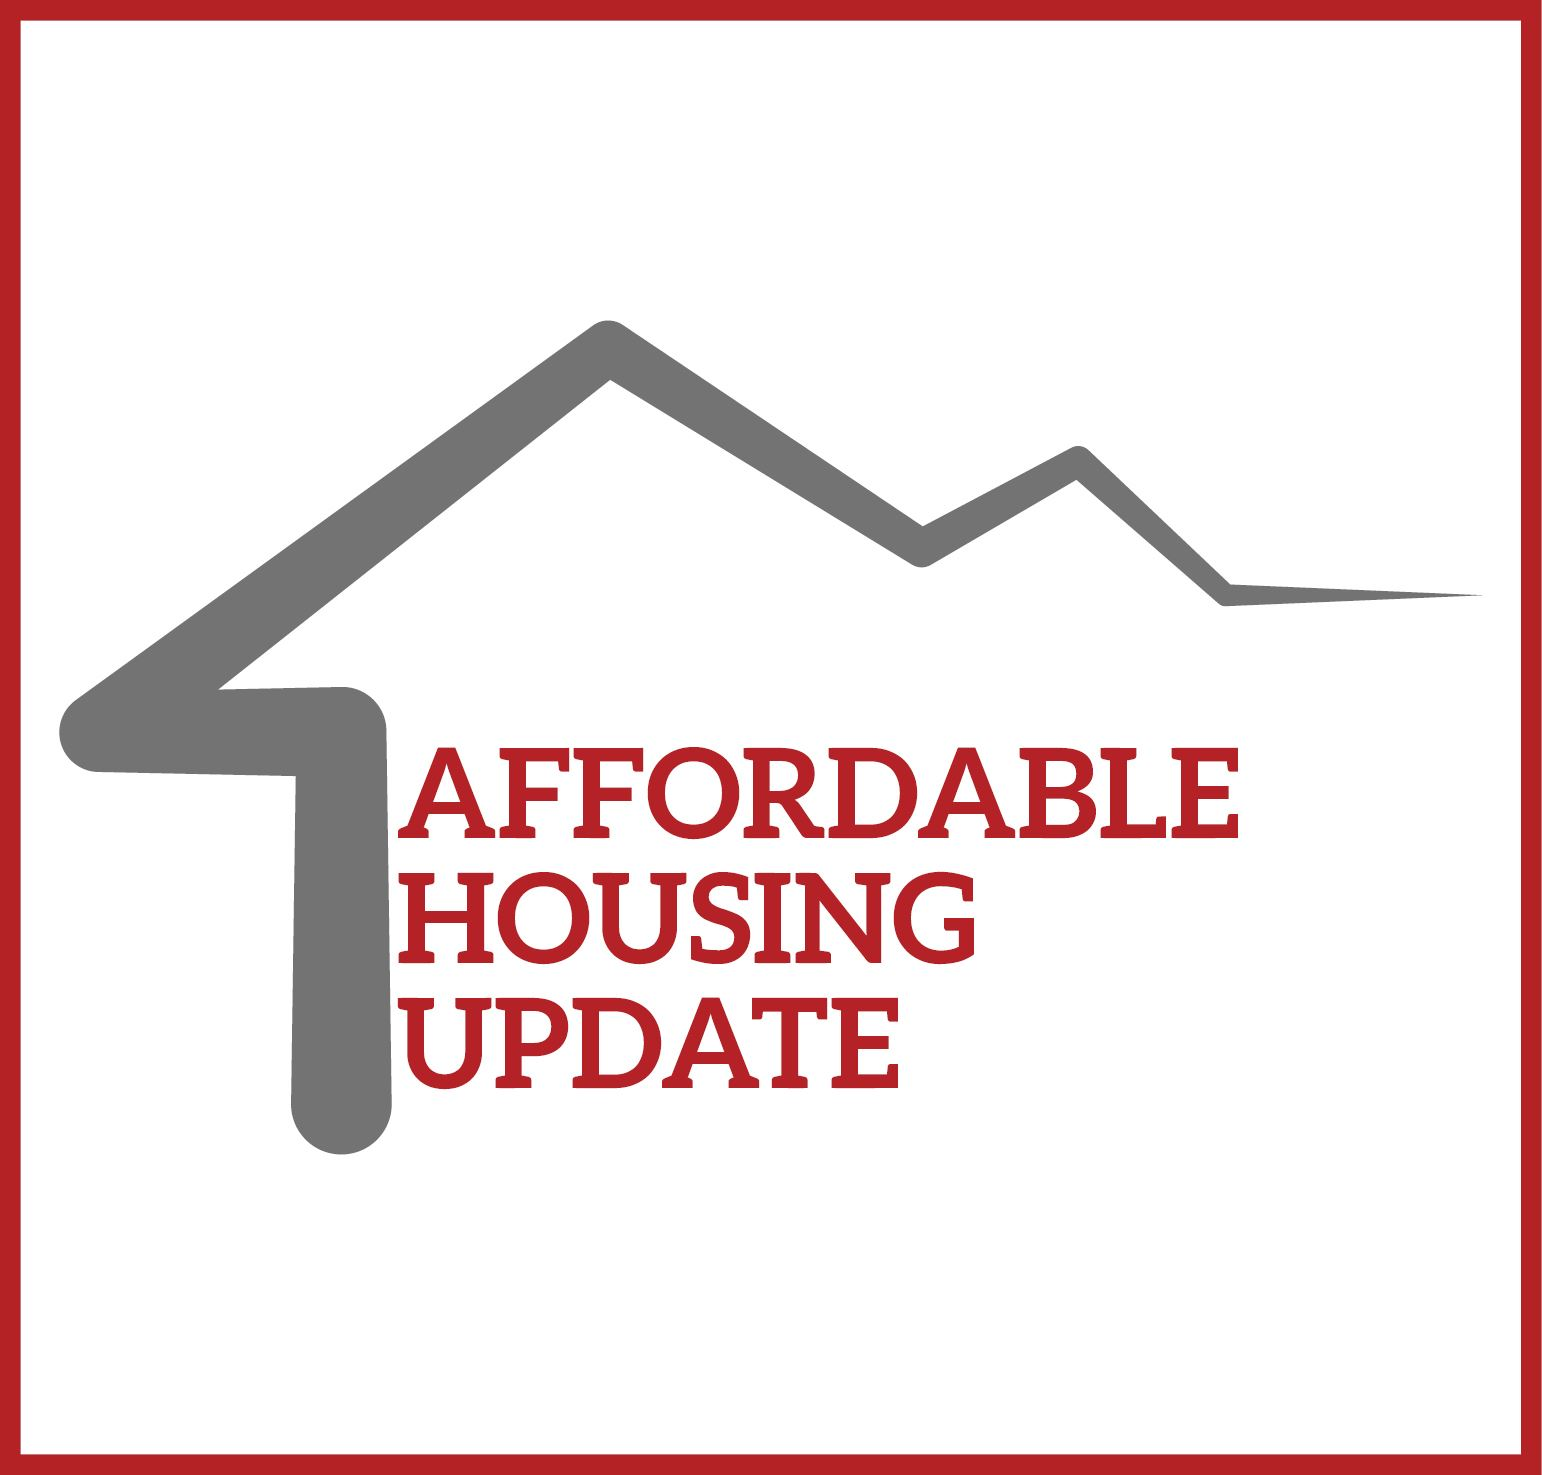 Affordable Housing Update